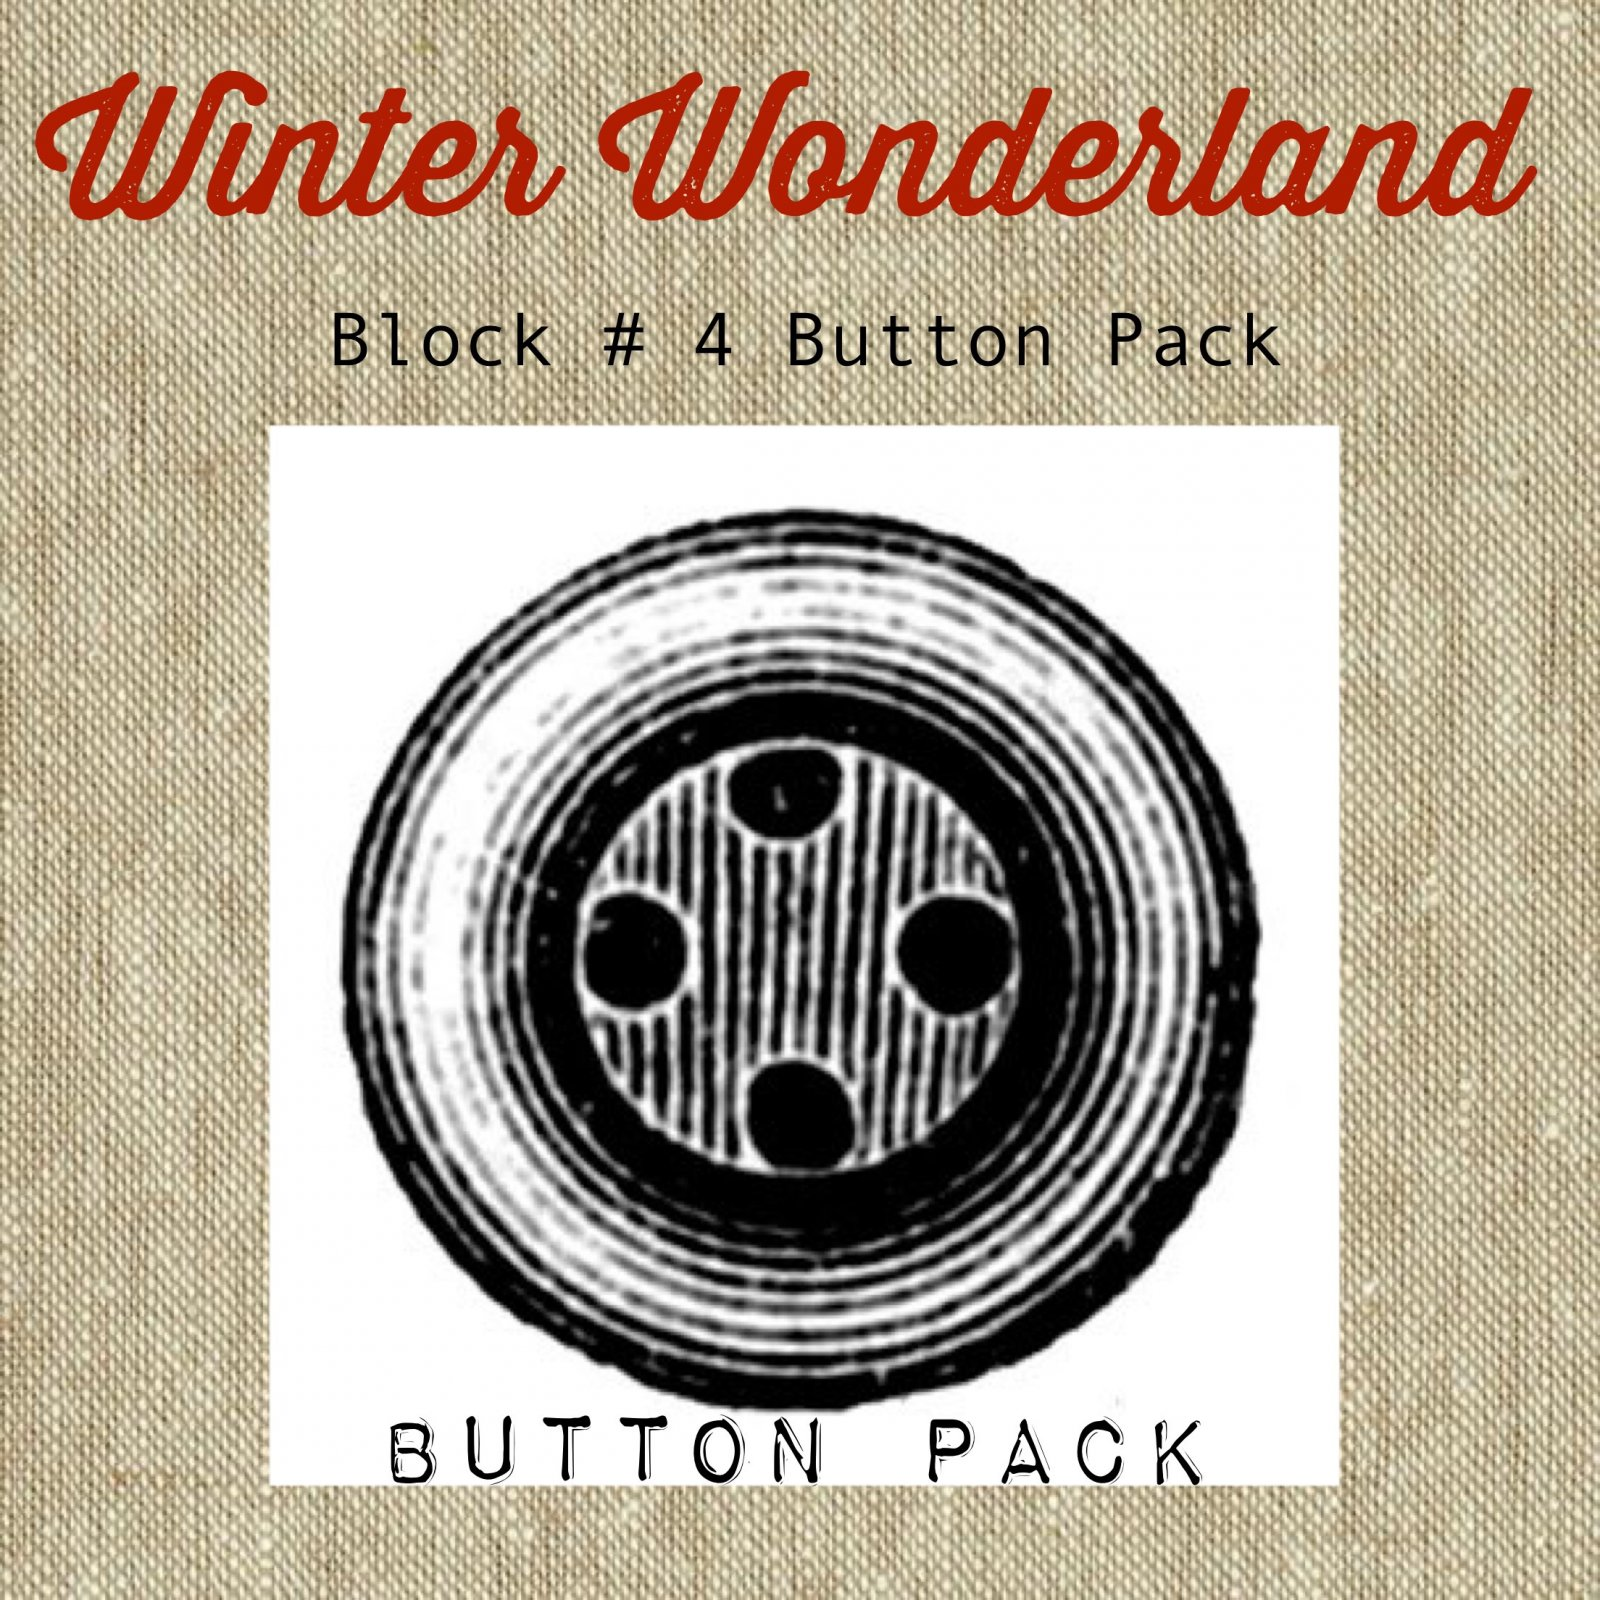 Winter Wonderland Block #4 Button Pack